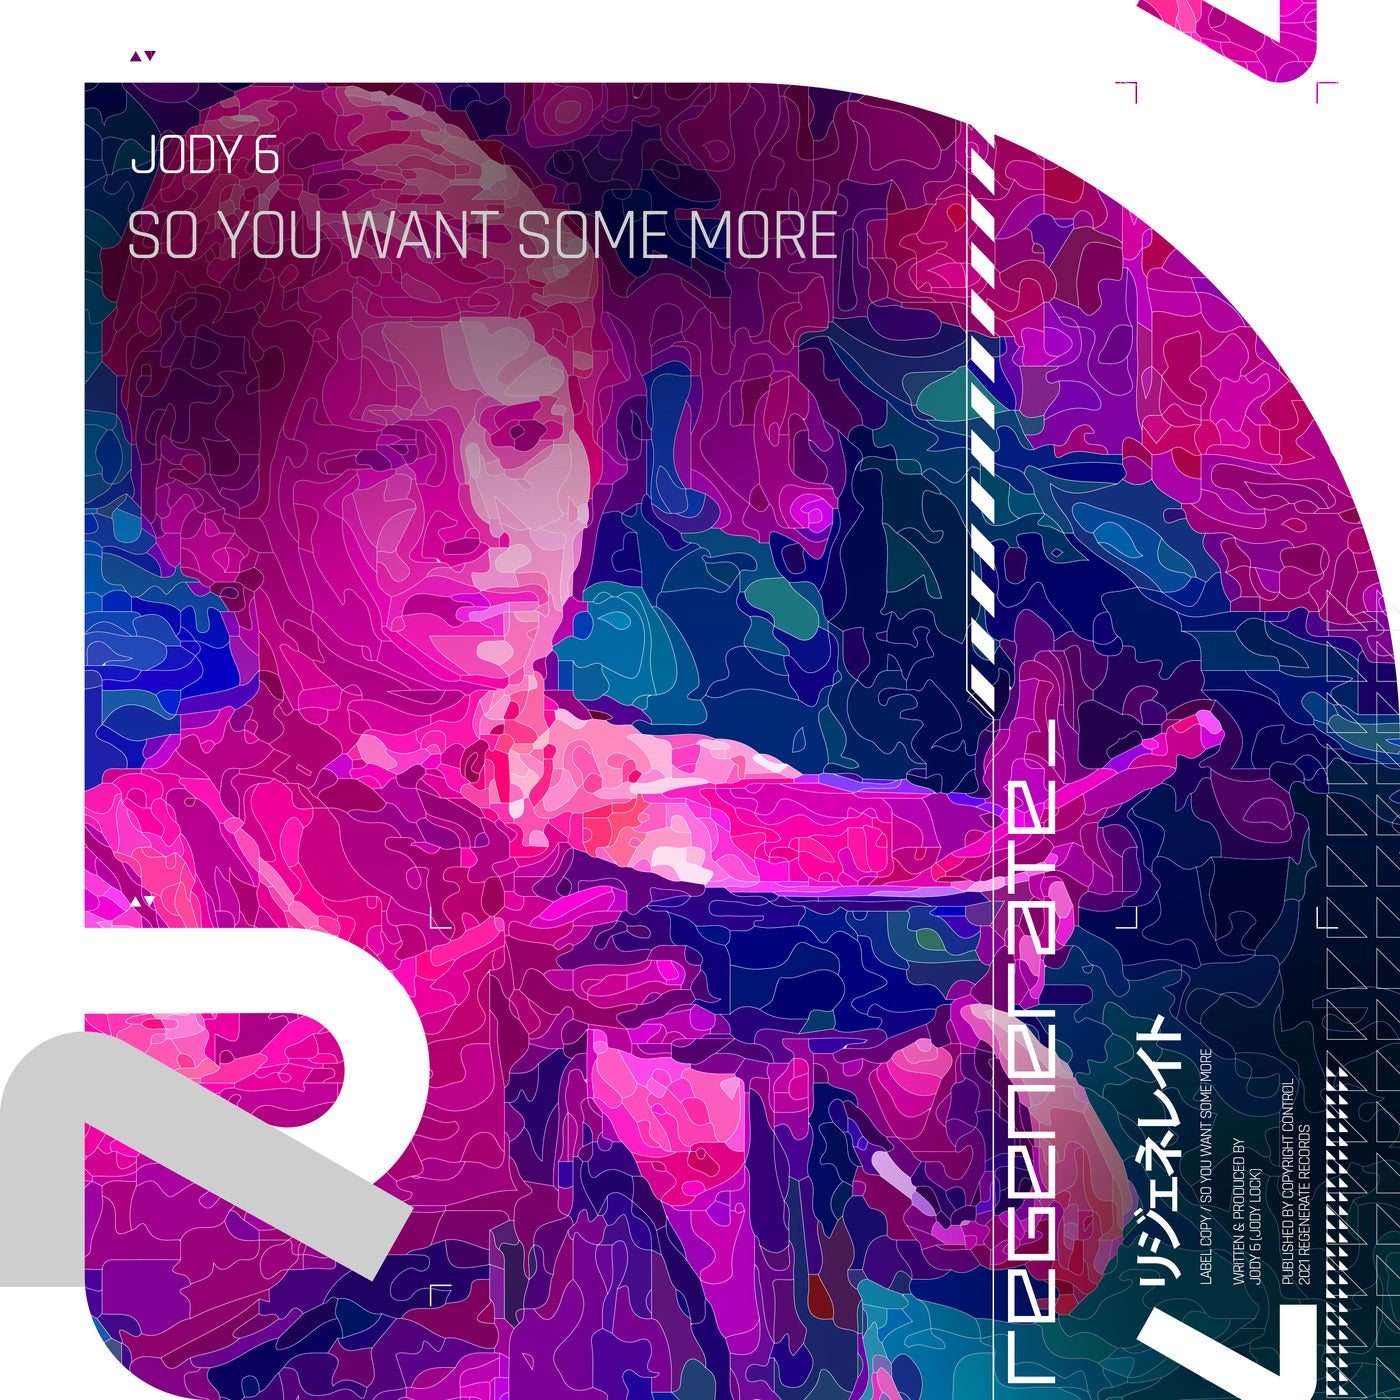 So You Want Some More (Extended Mix)